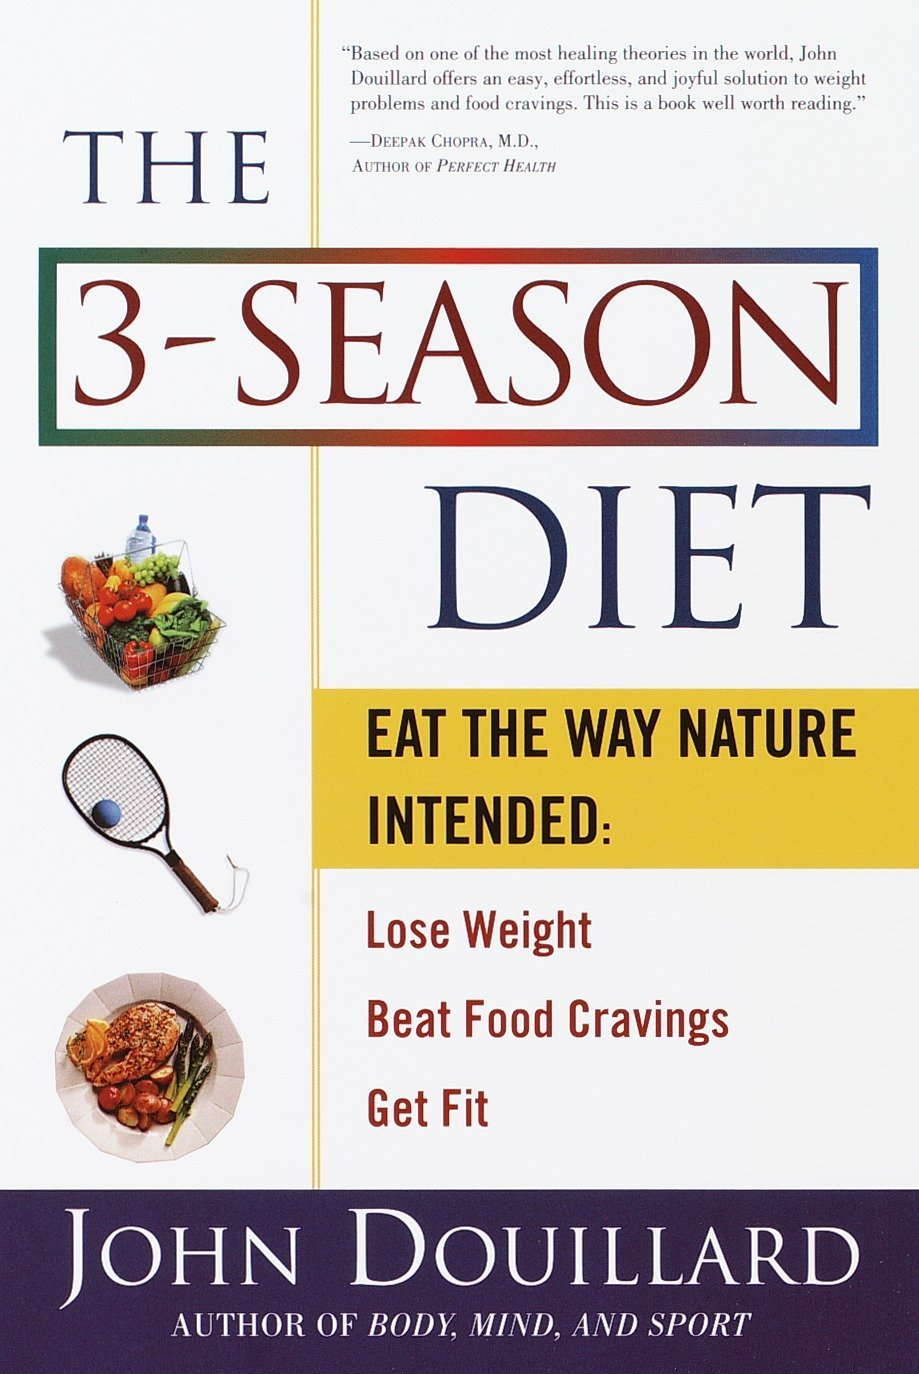 How to lose weight effortlessly with the help of nature